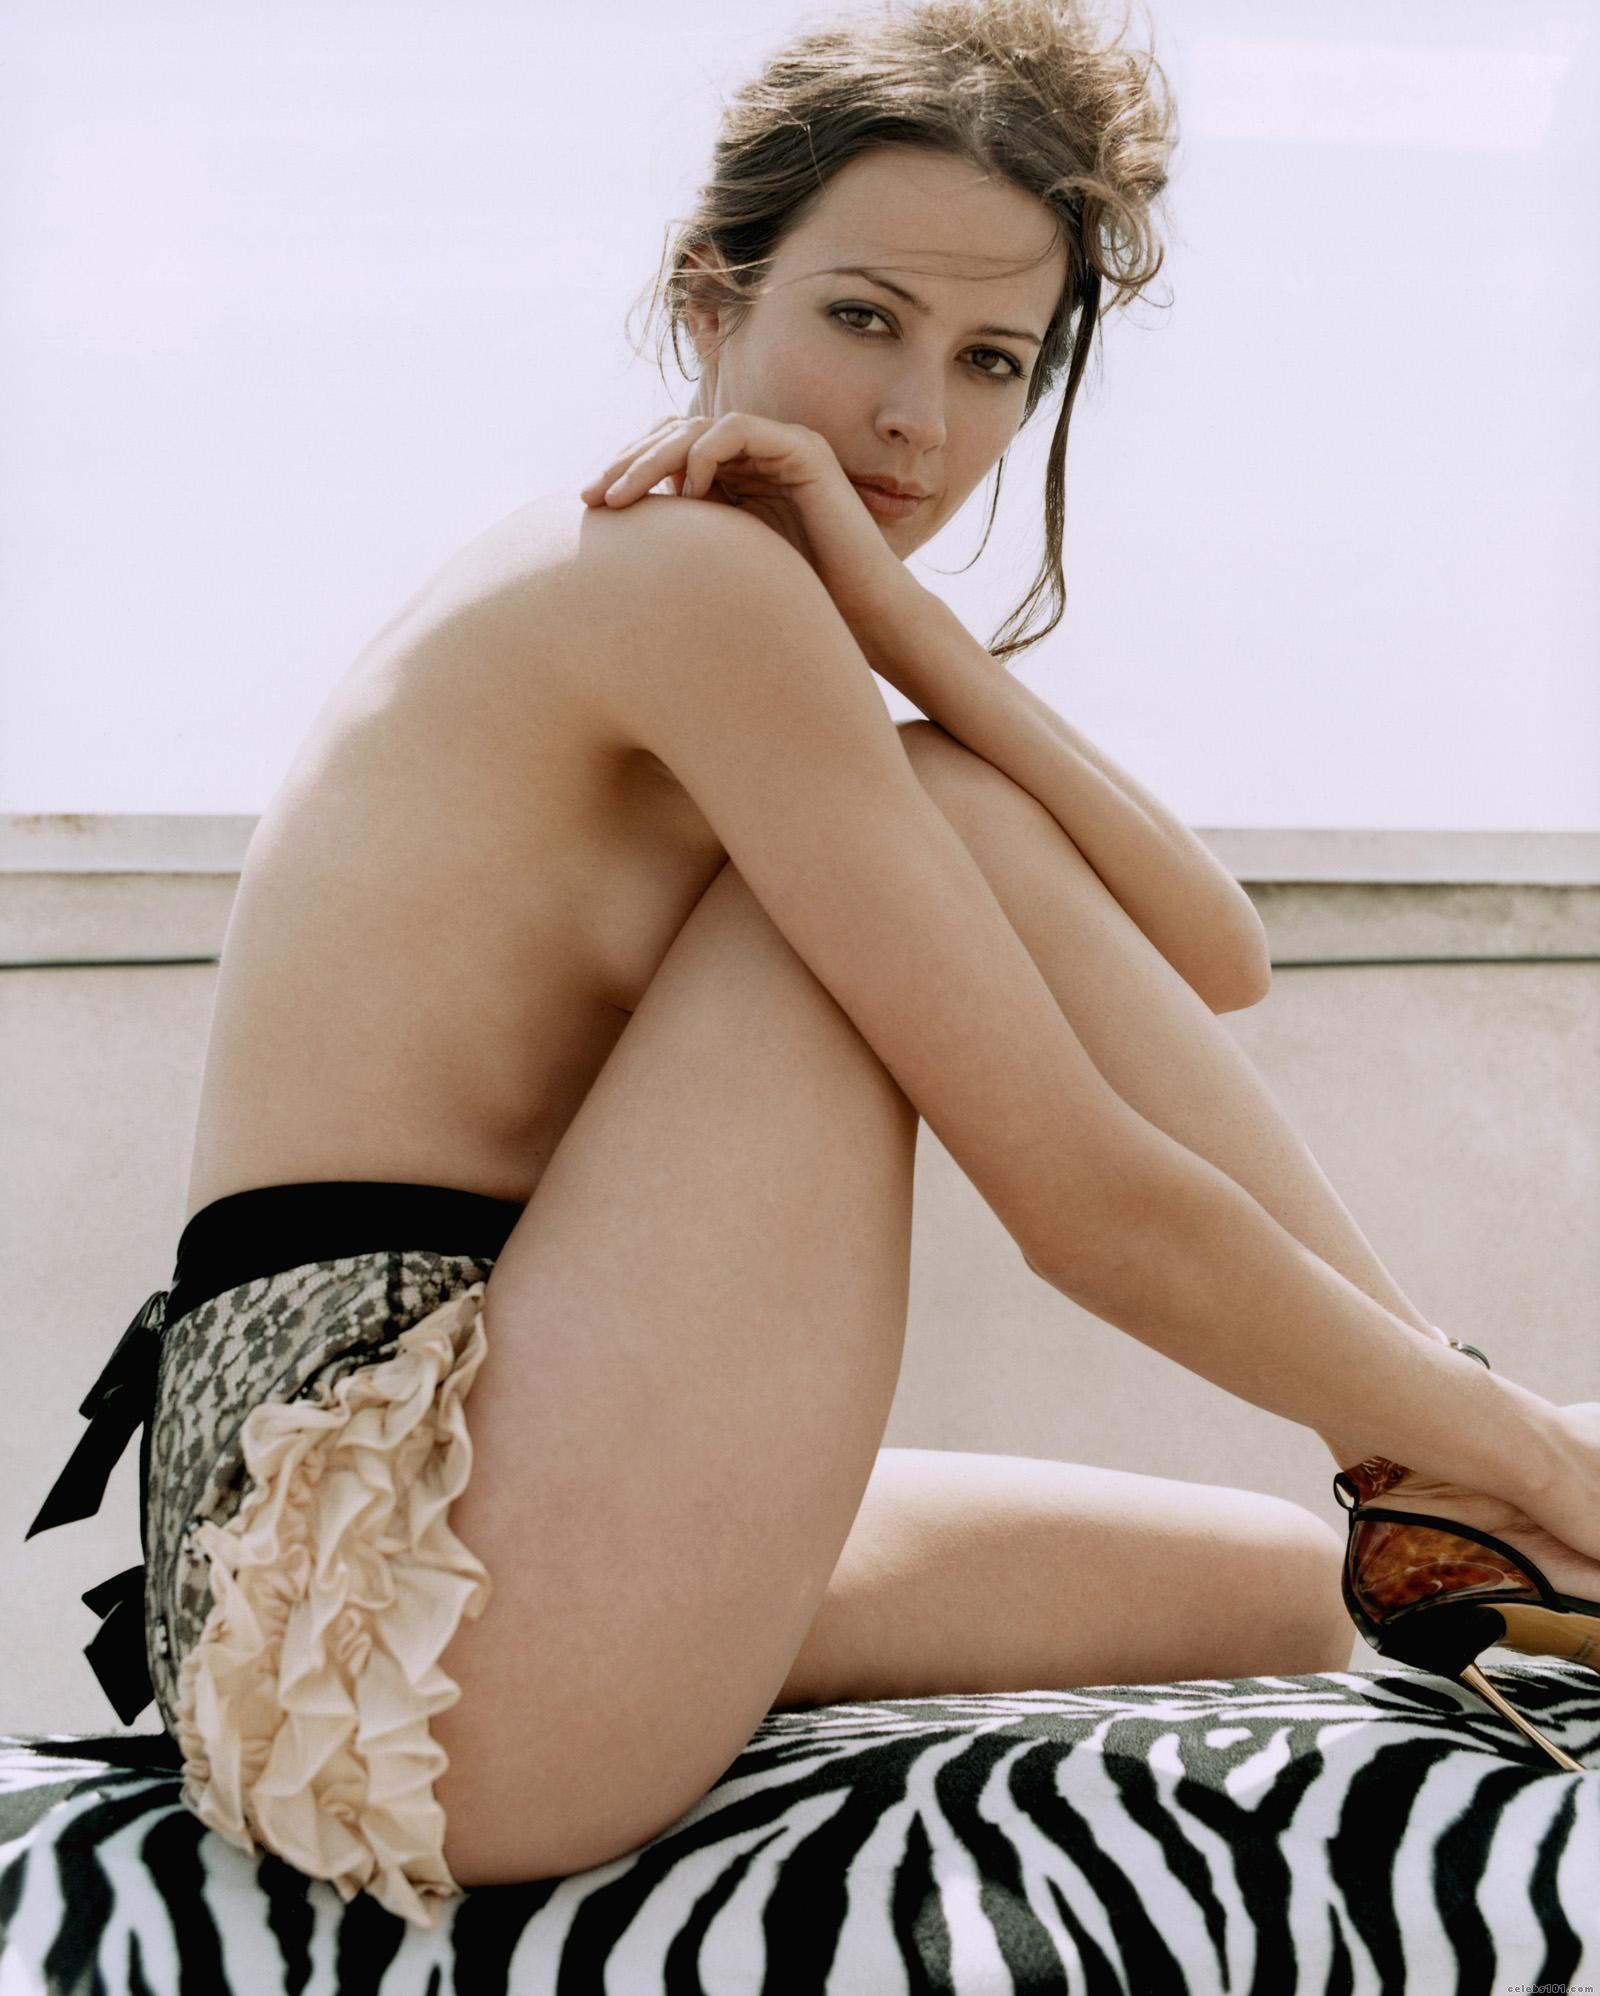 amy-acker-fashion-1-dvdbash-3.jpg